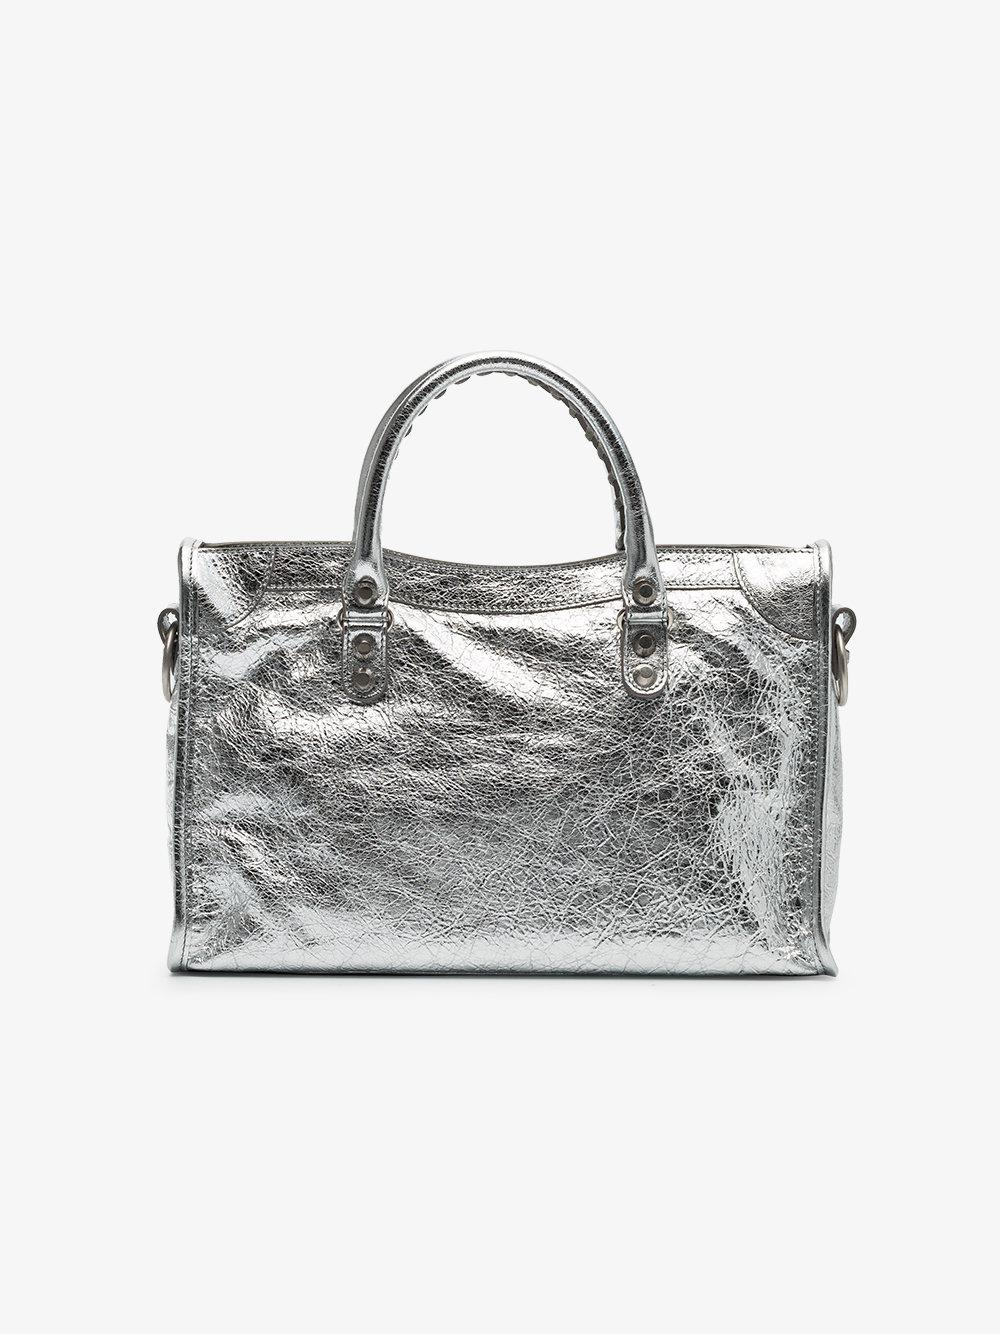 Balenciaga Silver Classic City Small Leather Tote Bag in Grey (Grey)